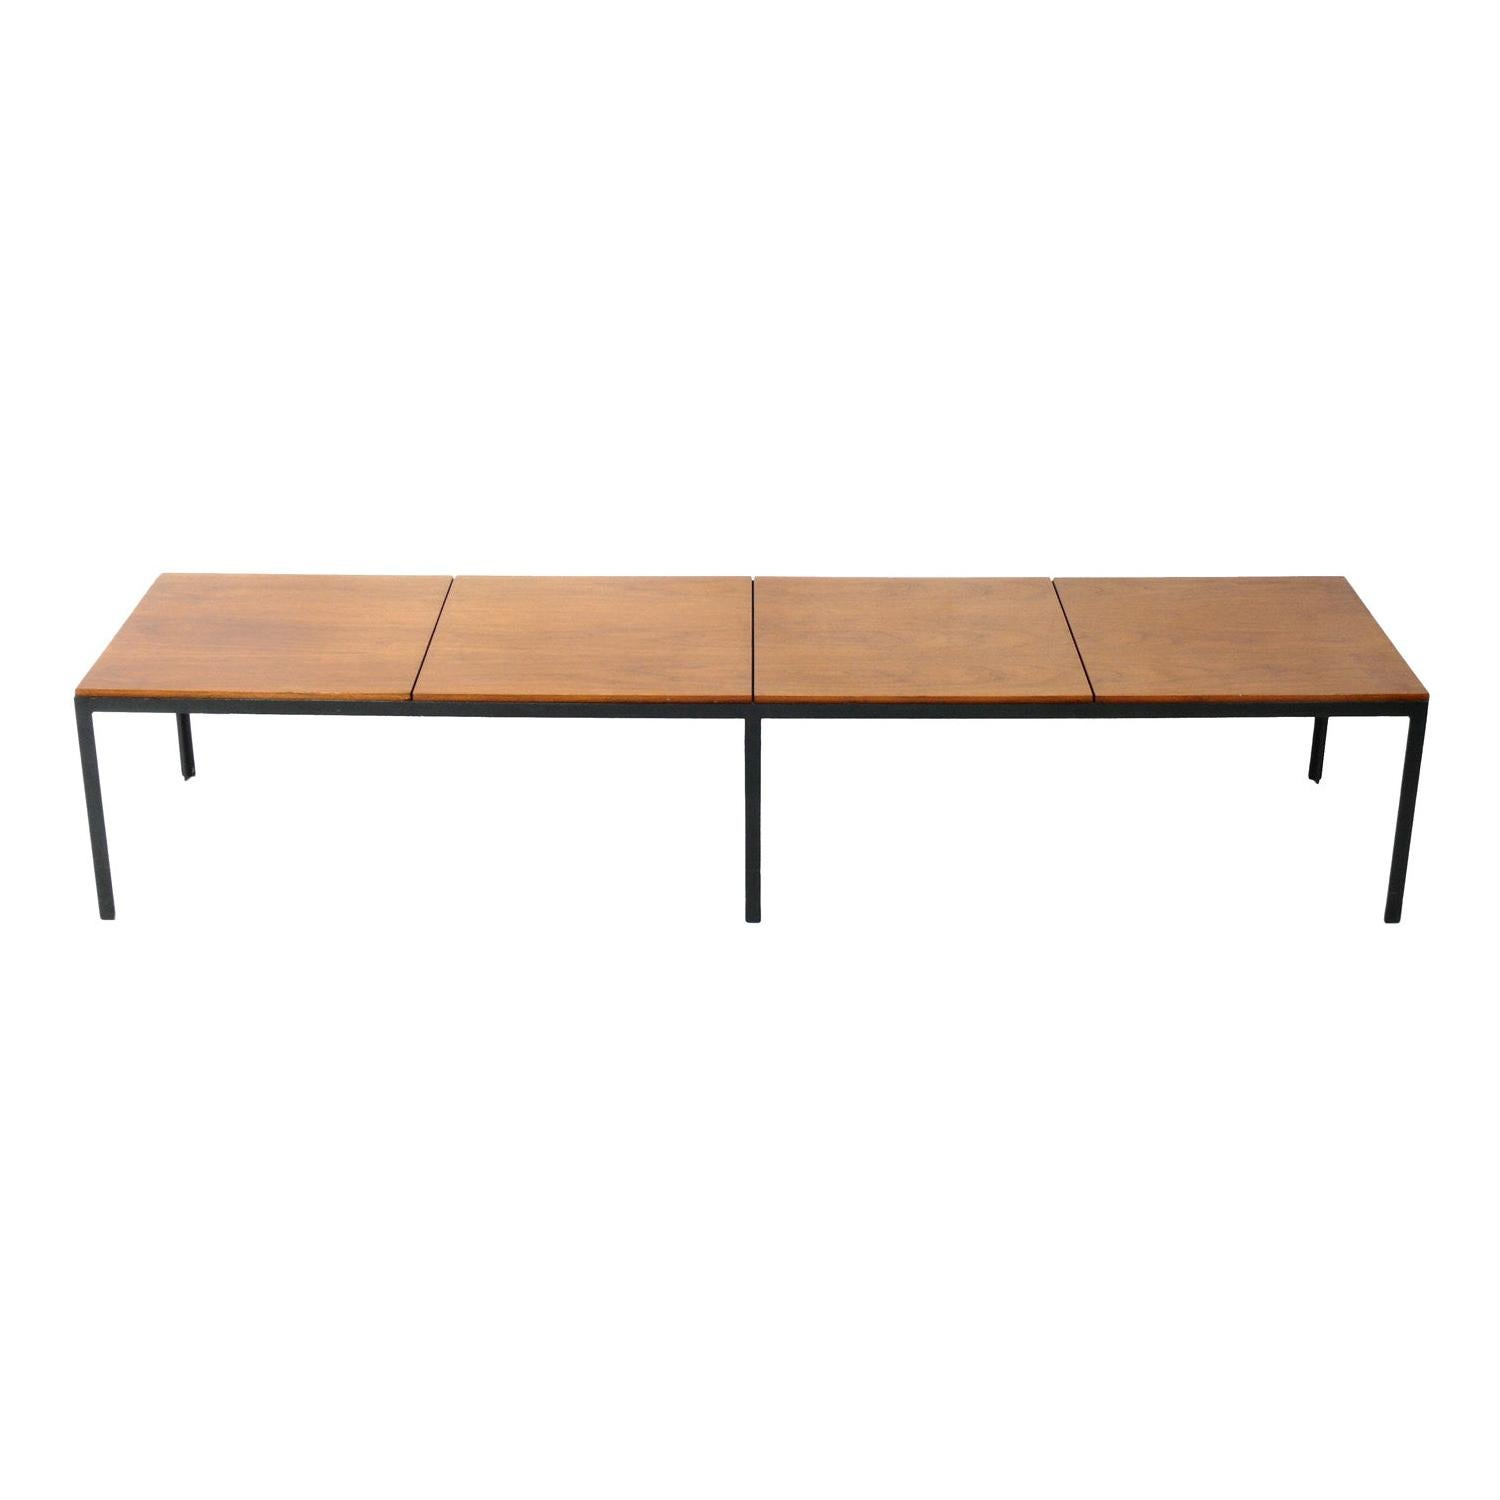 Clean Lined Walnut and Iron Coffee Table or Bench by Florence Knoll